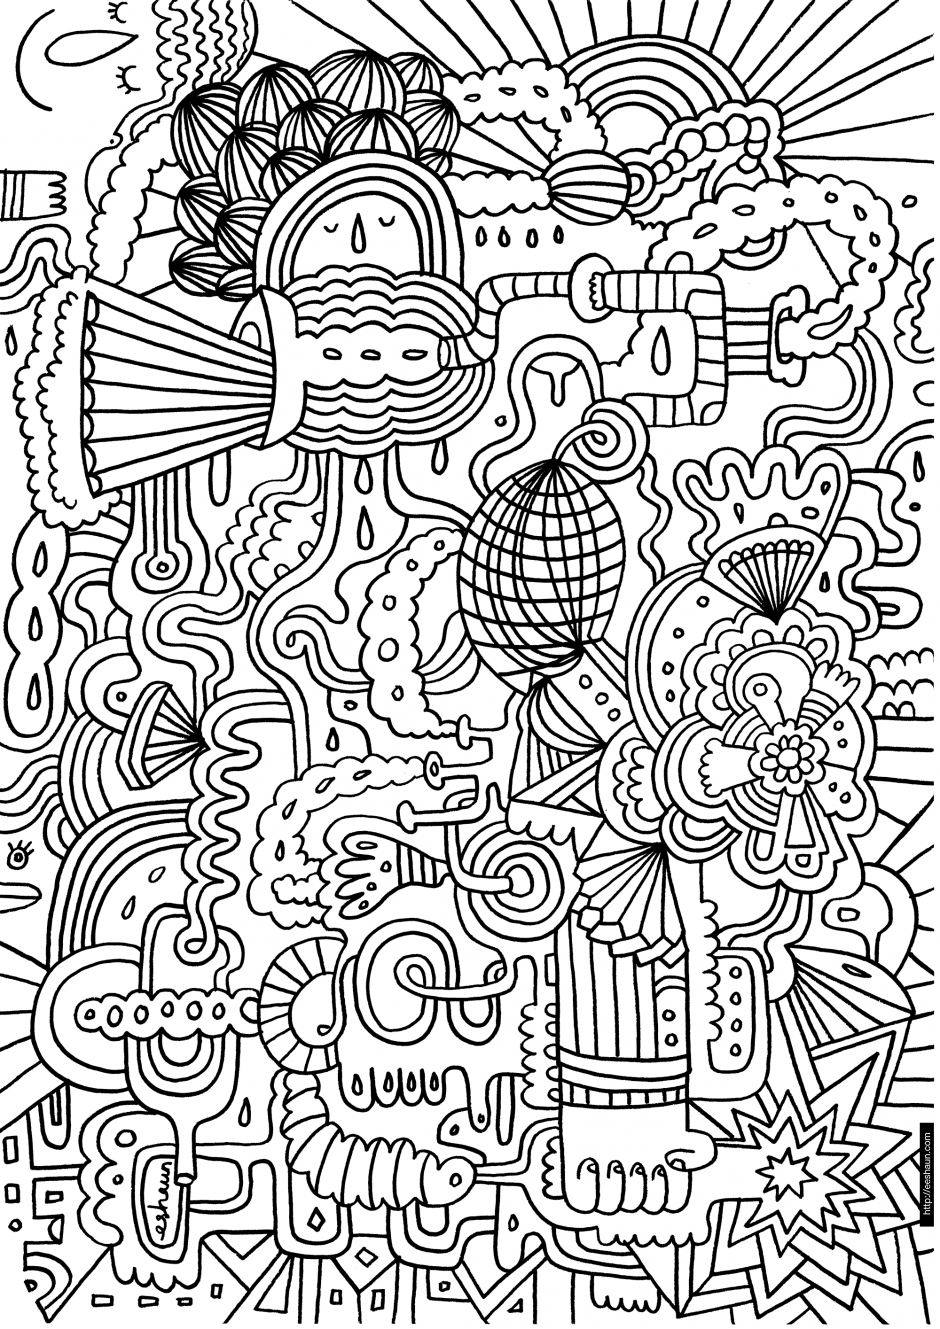 challenging coloring pages coloring pages difficult but fun coloring pages free and challenging pages coloring